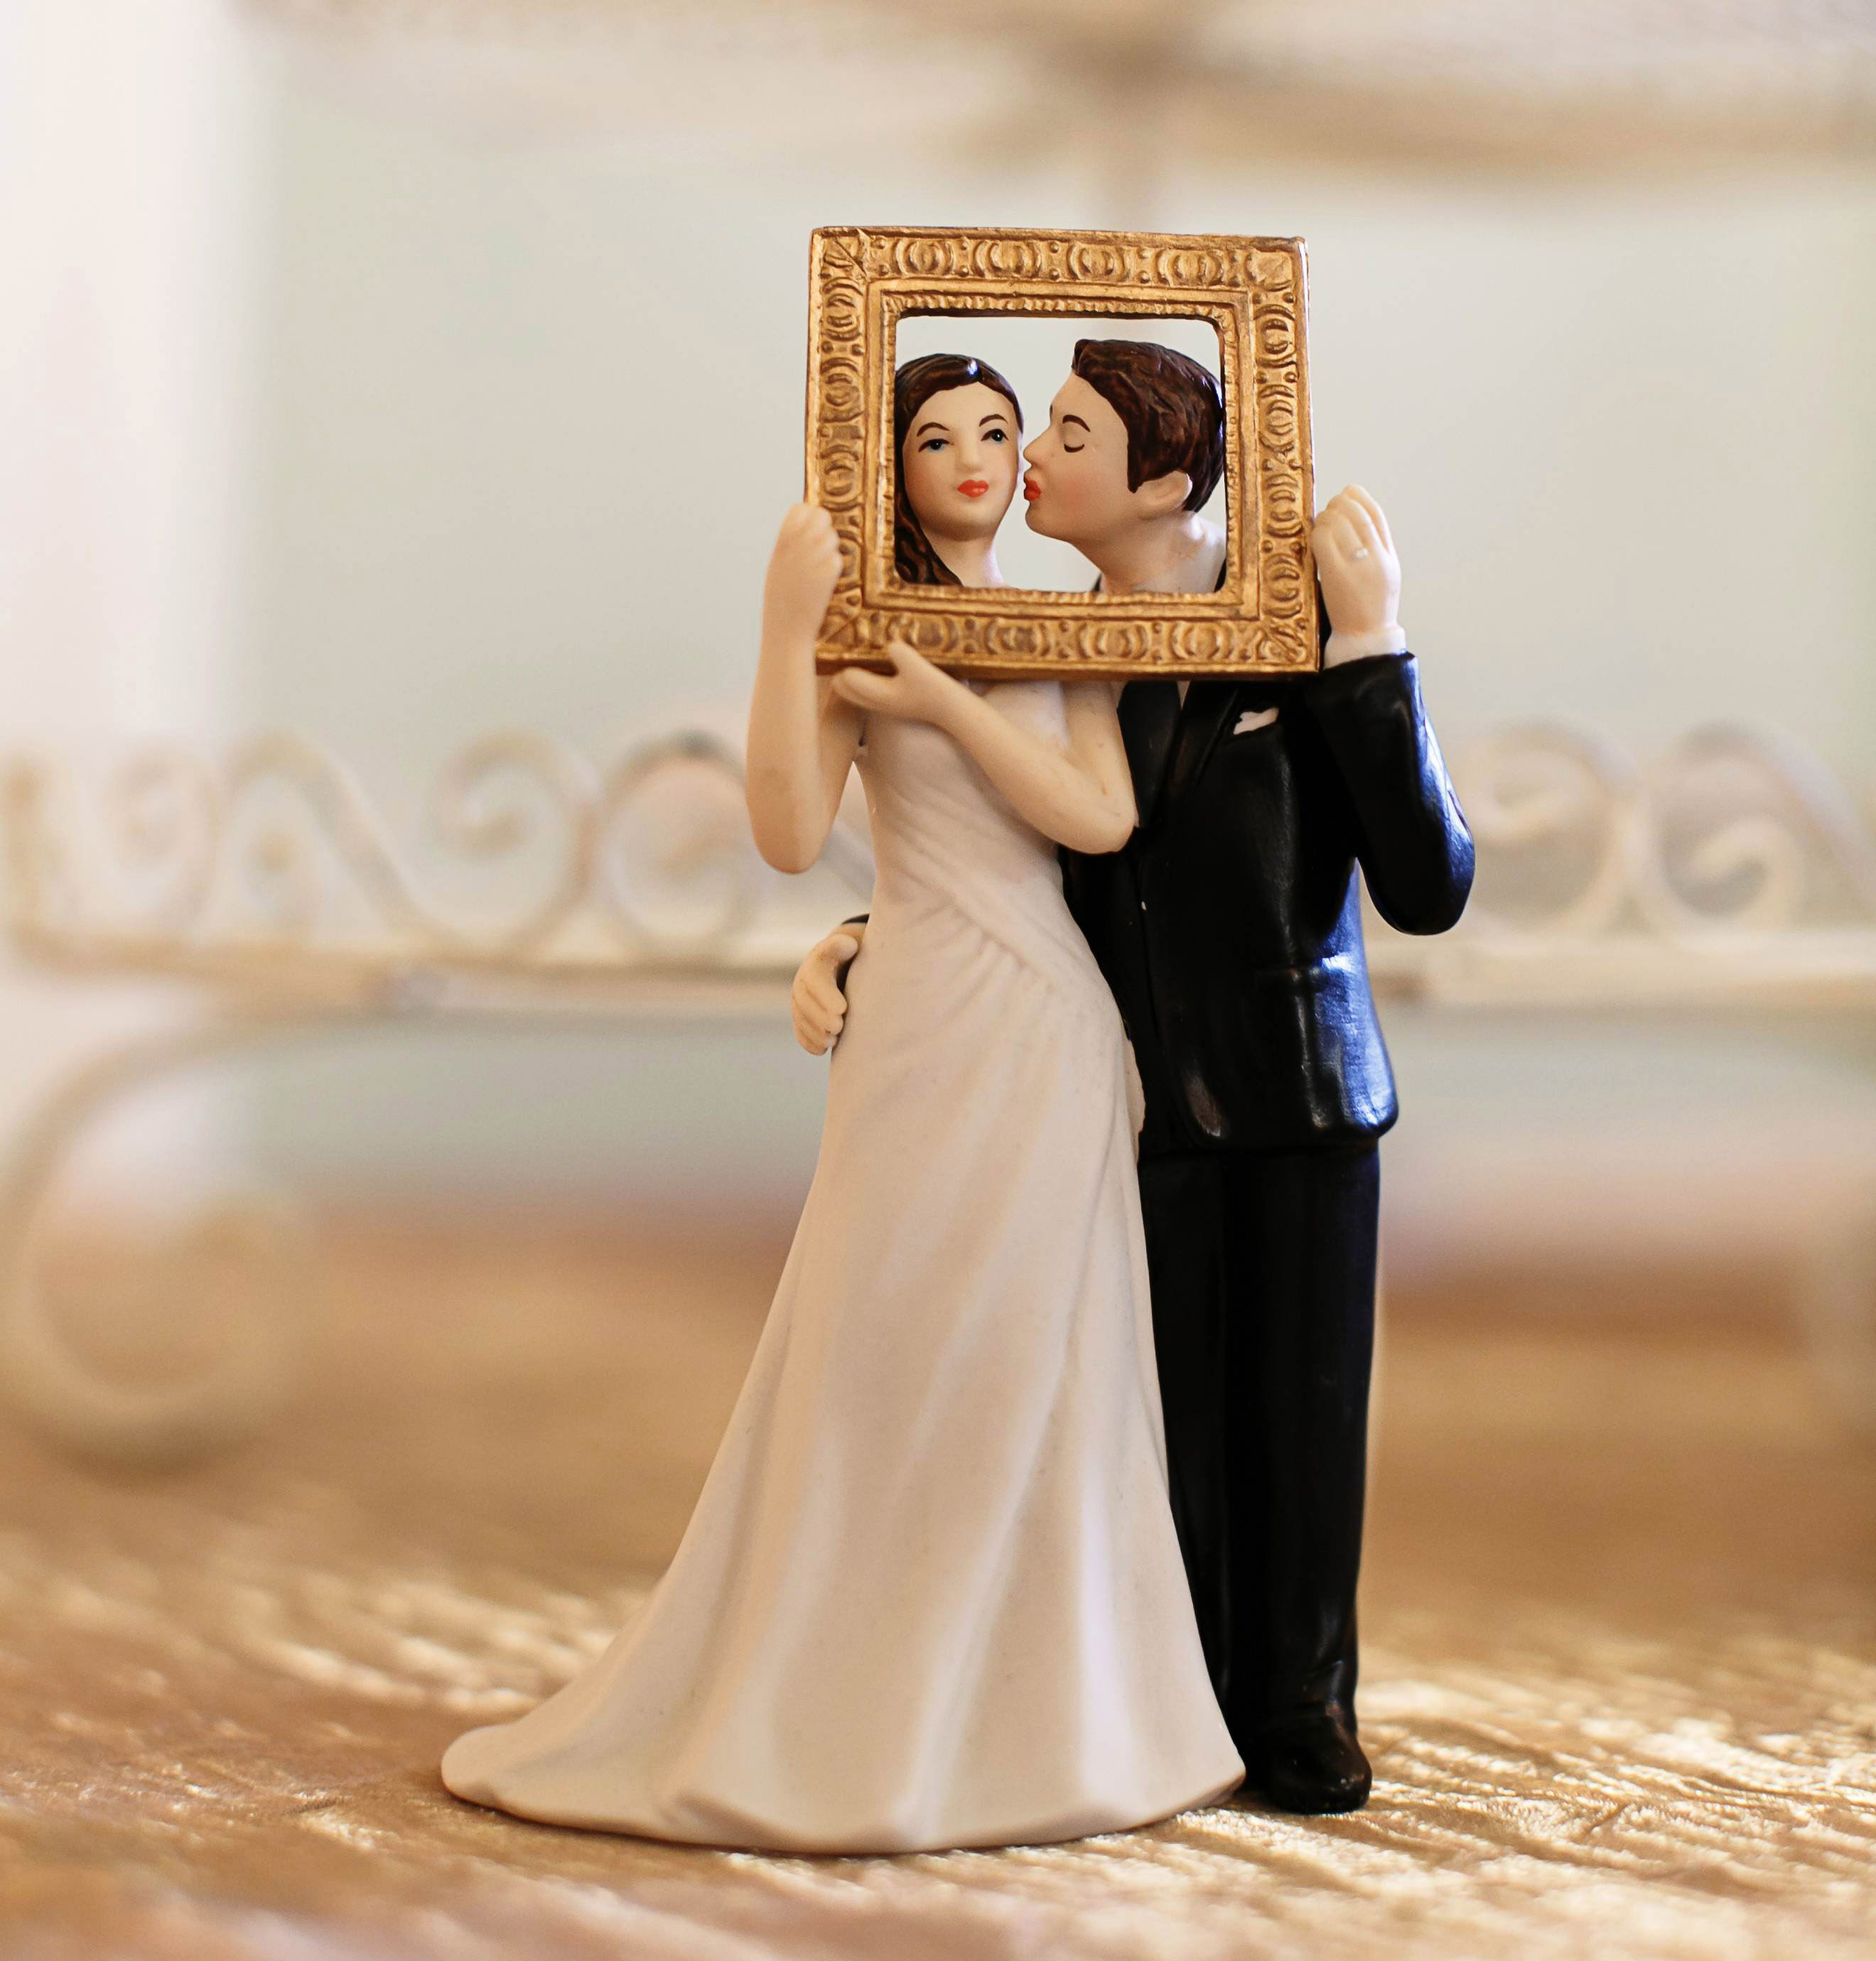 Wedding Cake Toppers 7 Fun And Unique Examples